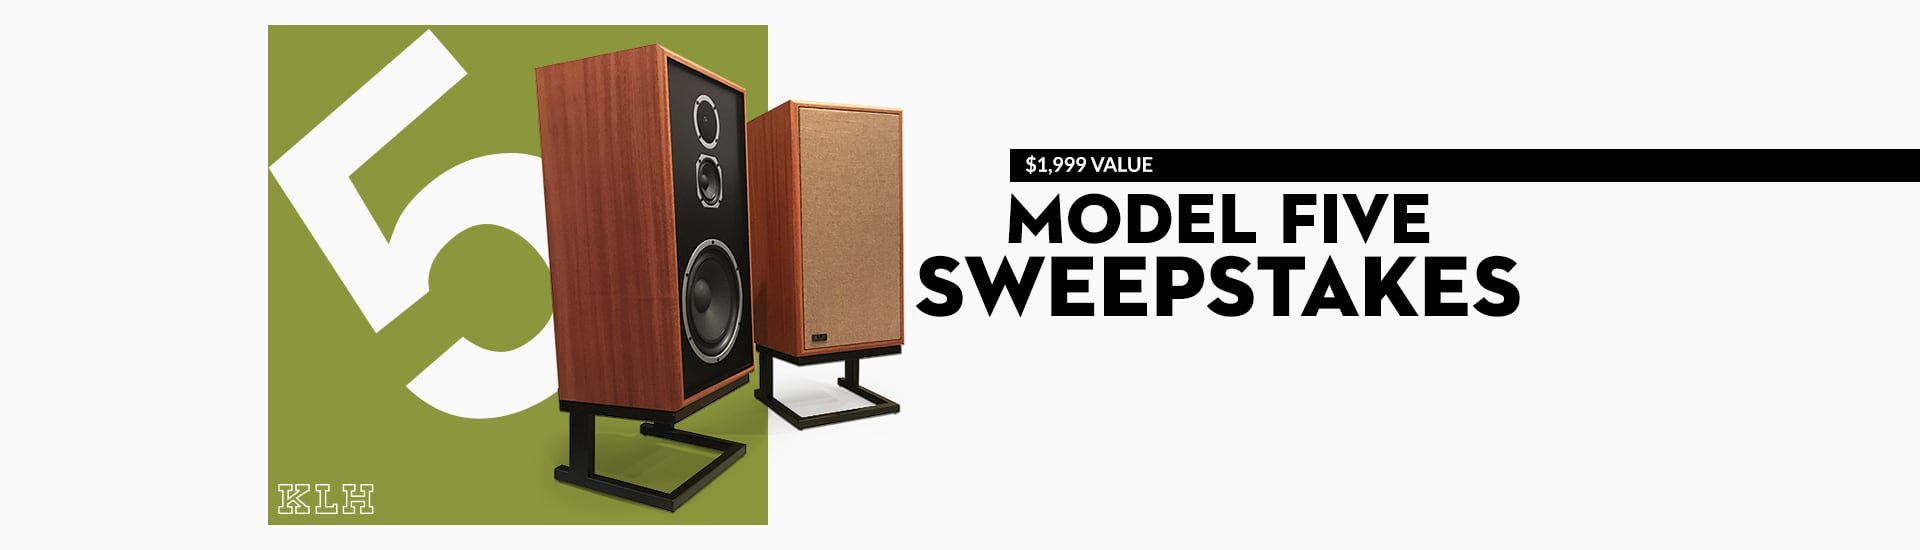 KLH Model Five Sweepstakes